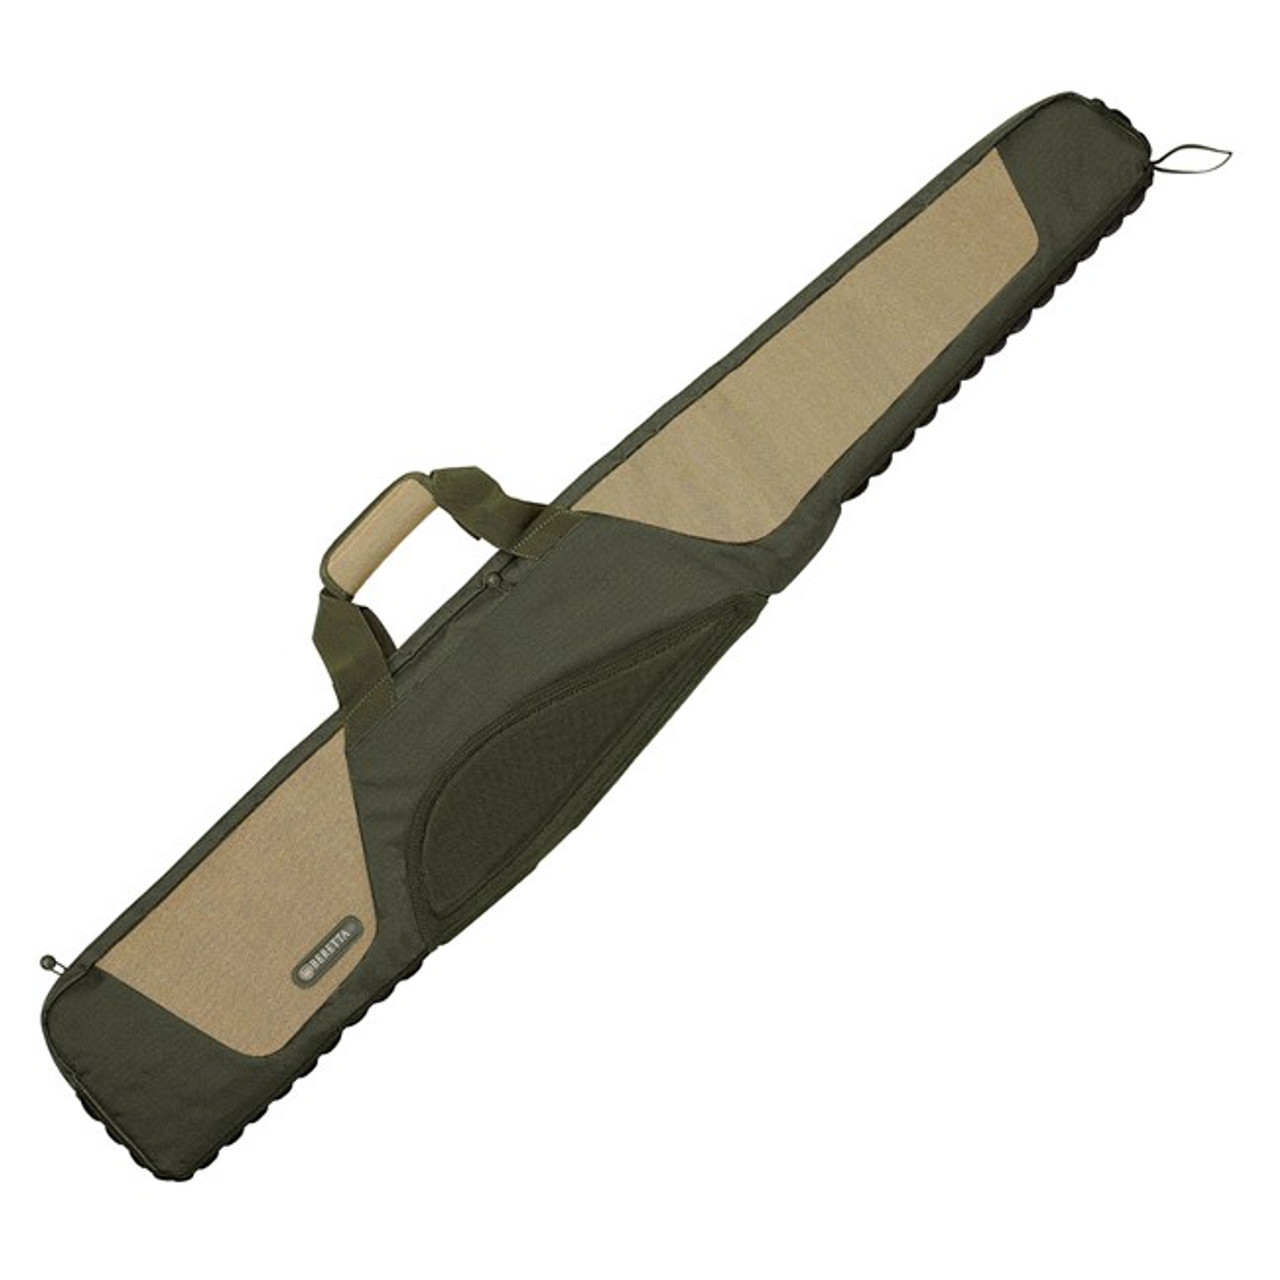 Beretta Retriever Shotgun Slip 143cm